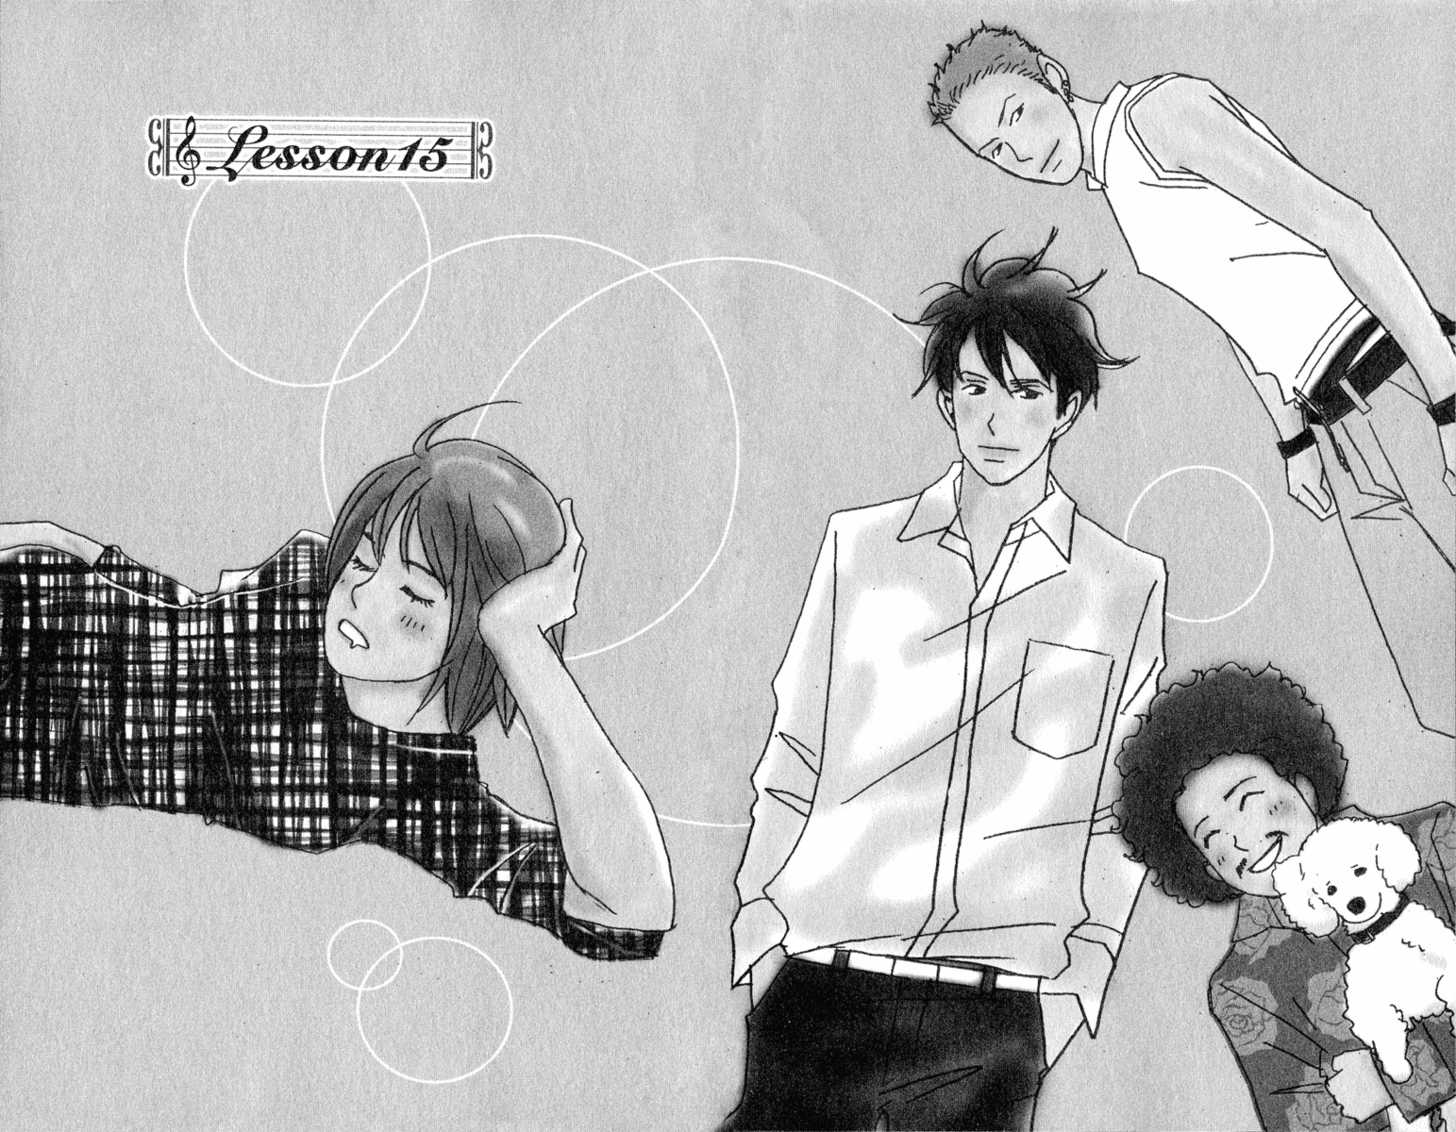 Nodame Cantabile 15 Page 1